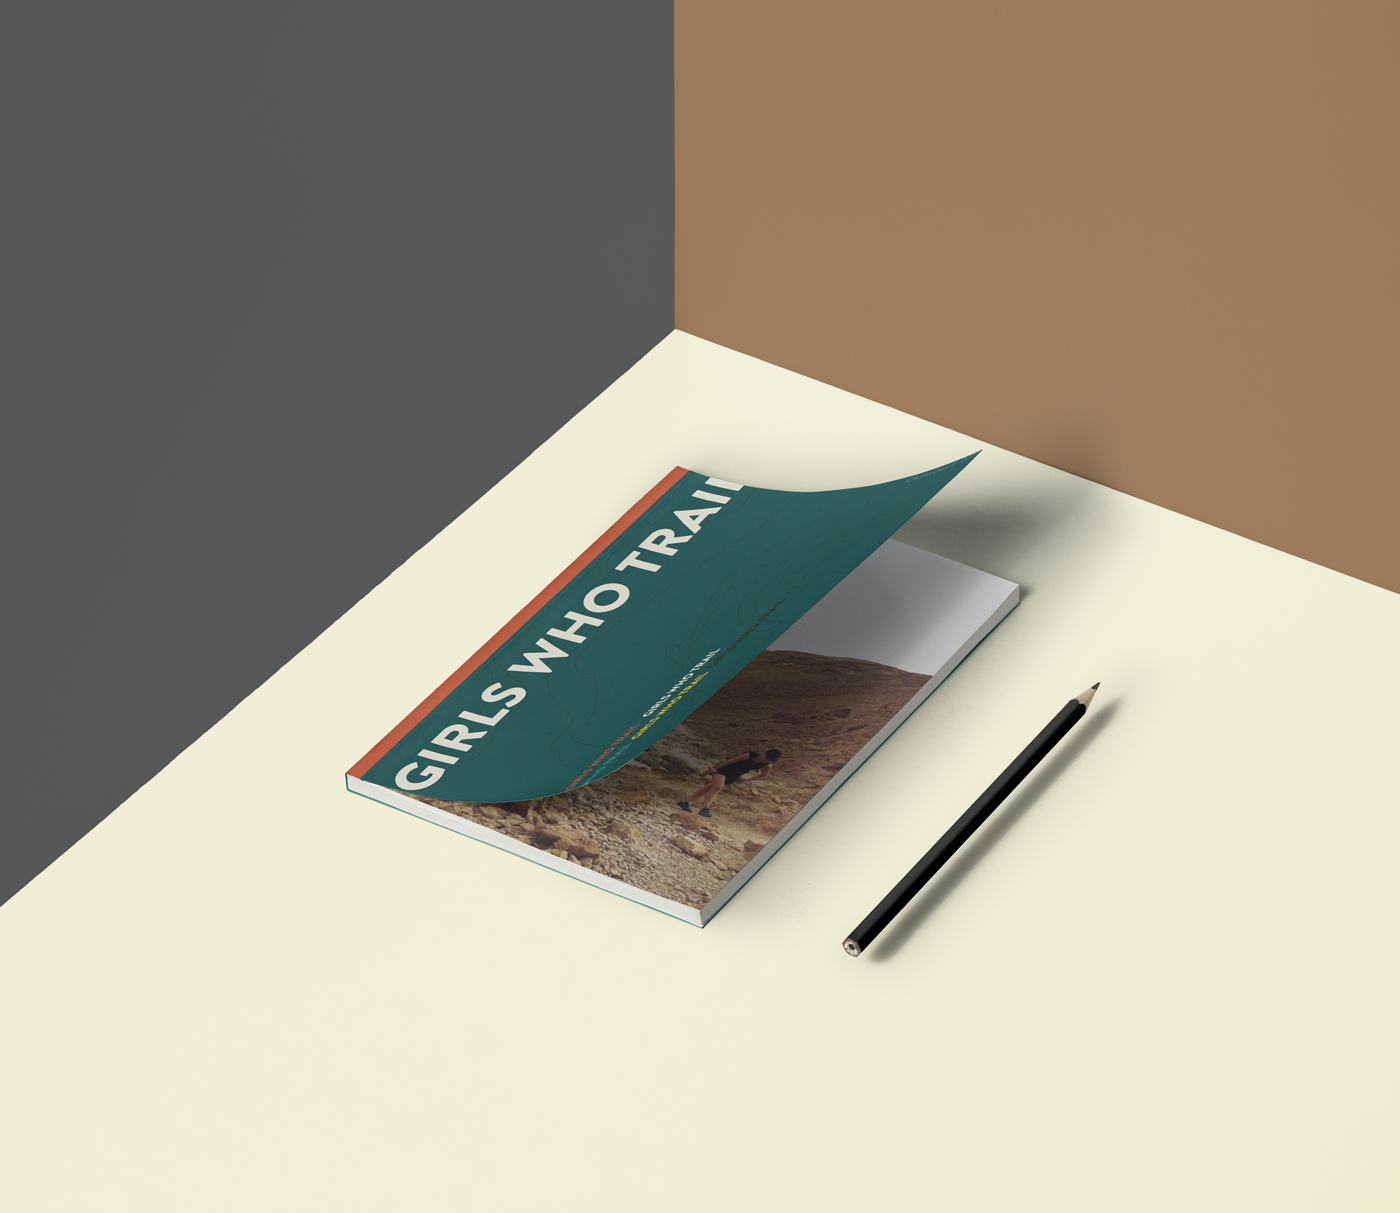 Magazine-1-2-Up-Mockup-1.png